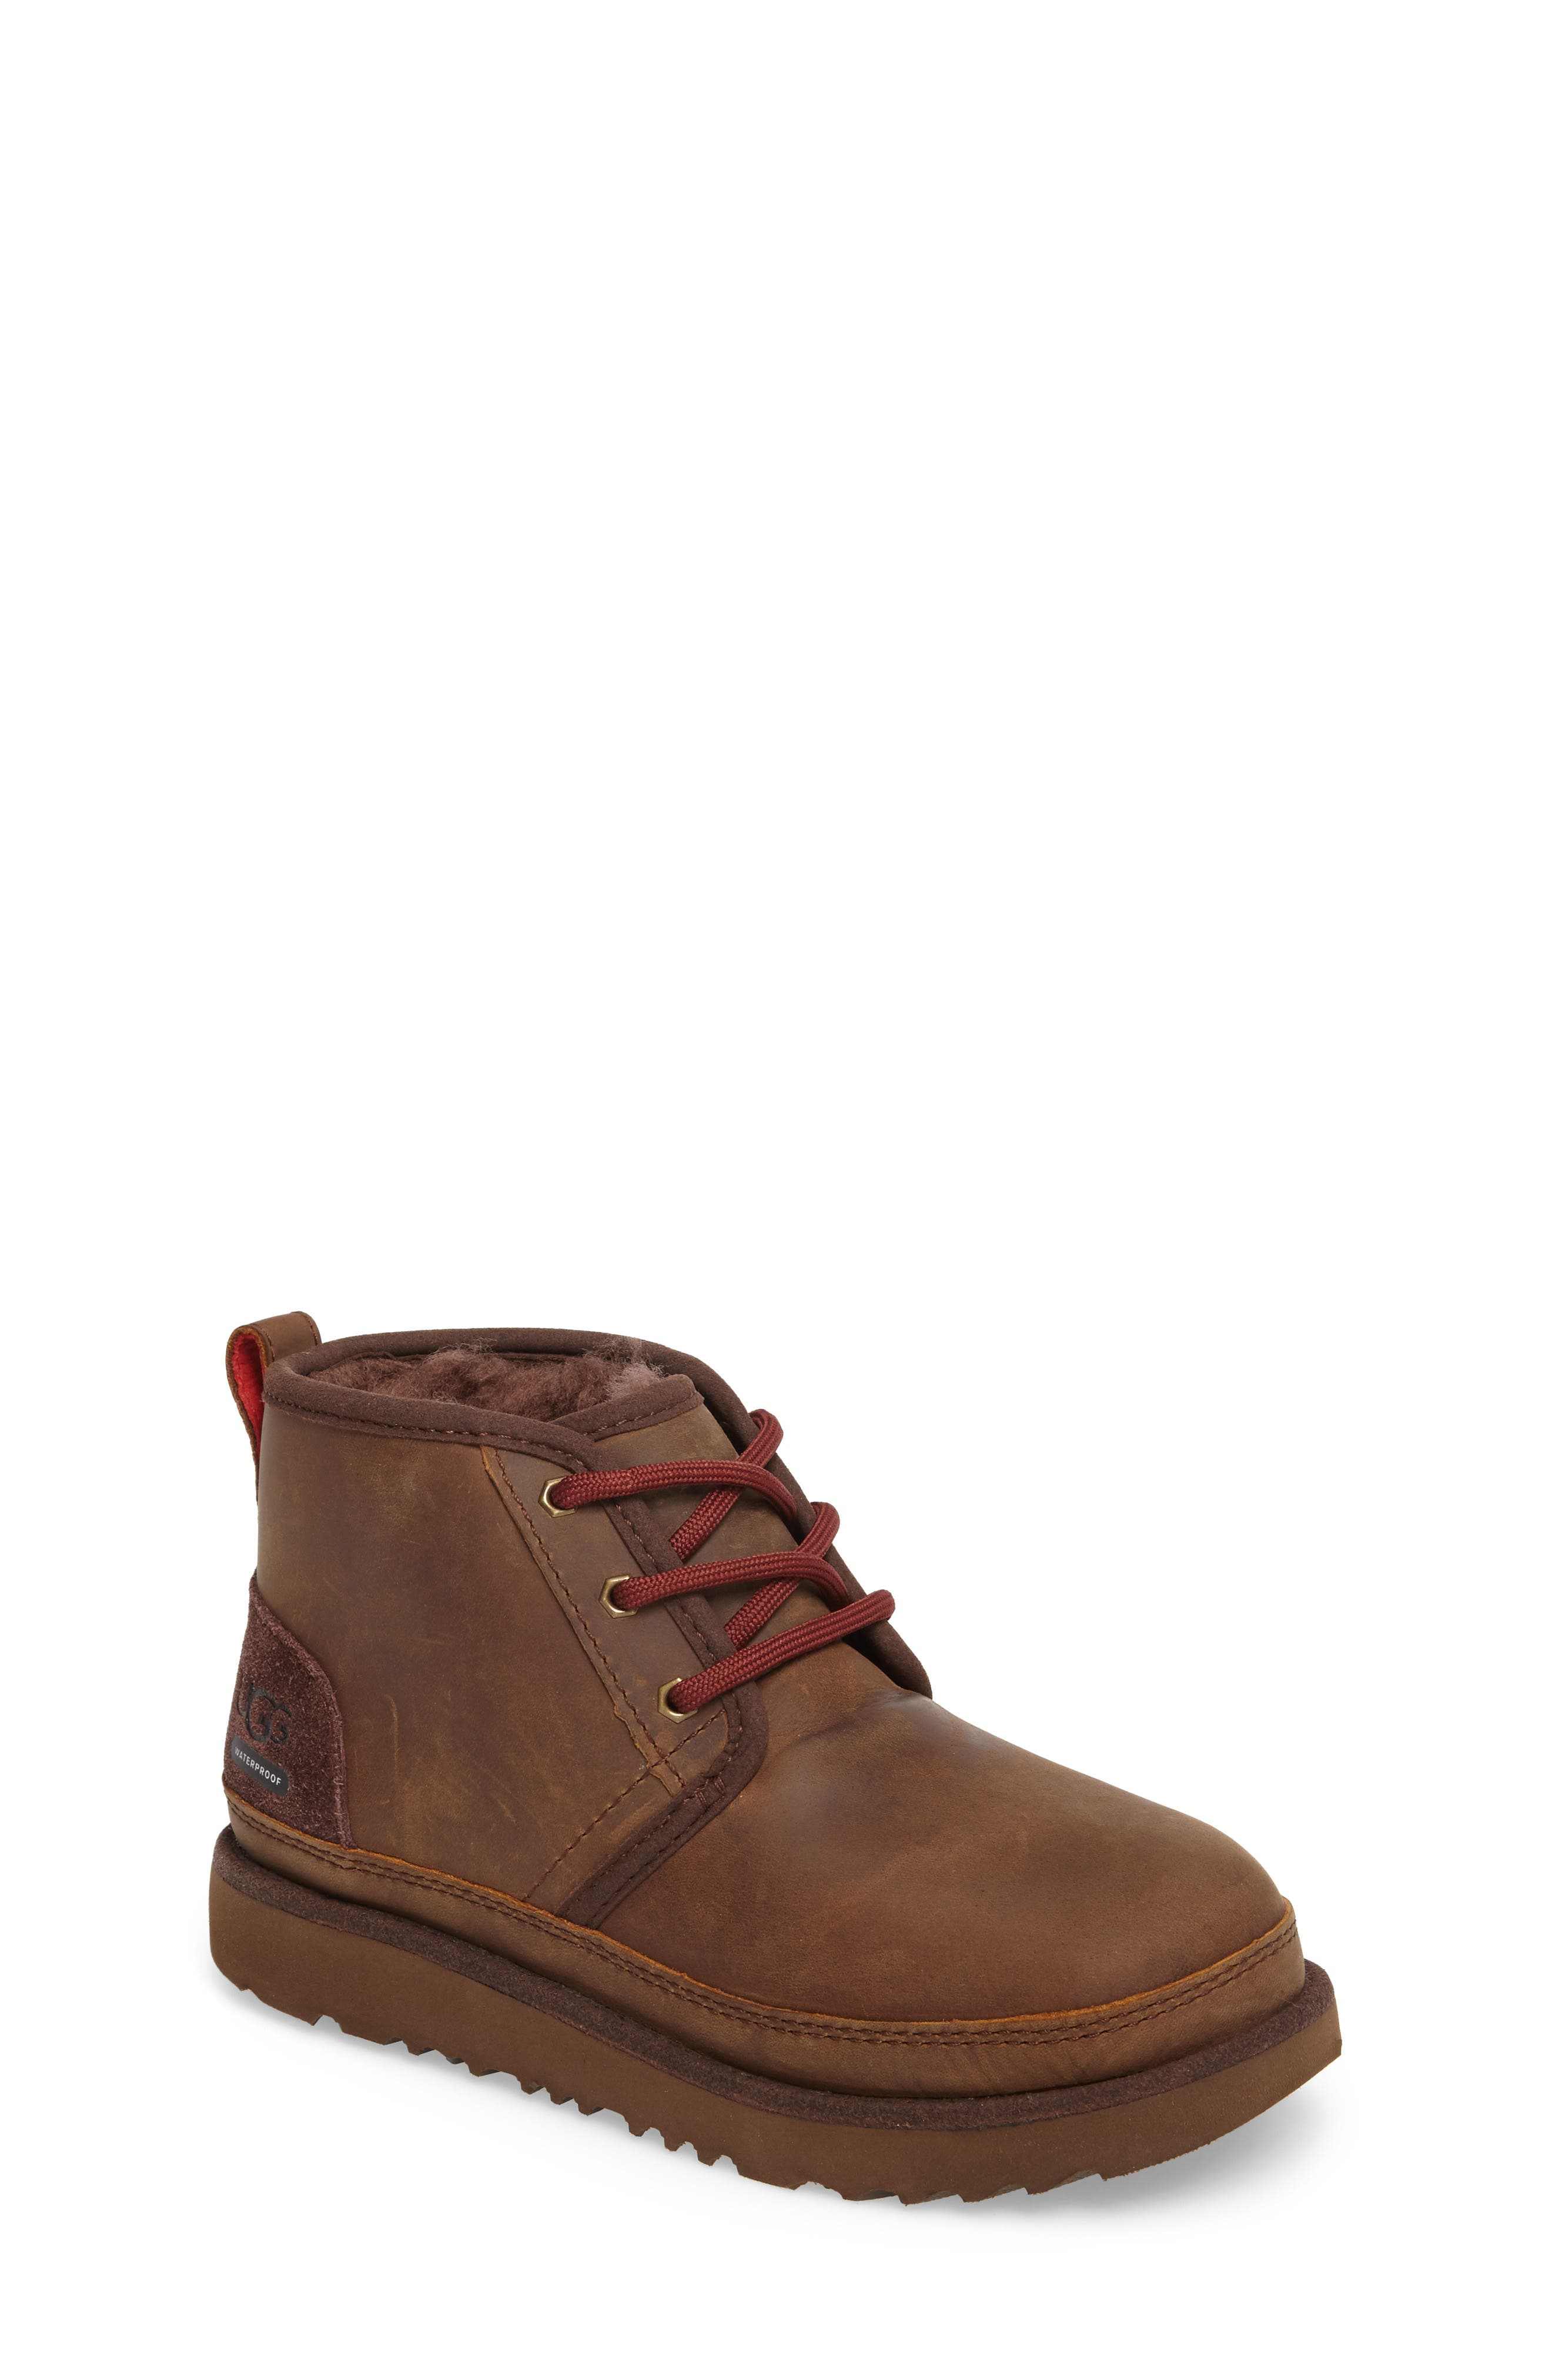 Neumel II Waterproof Chukka,                         Main,                         color, Grizzly